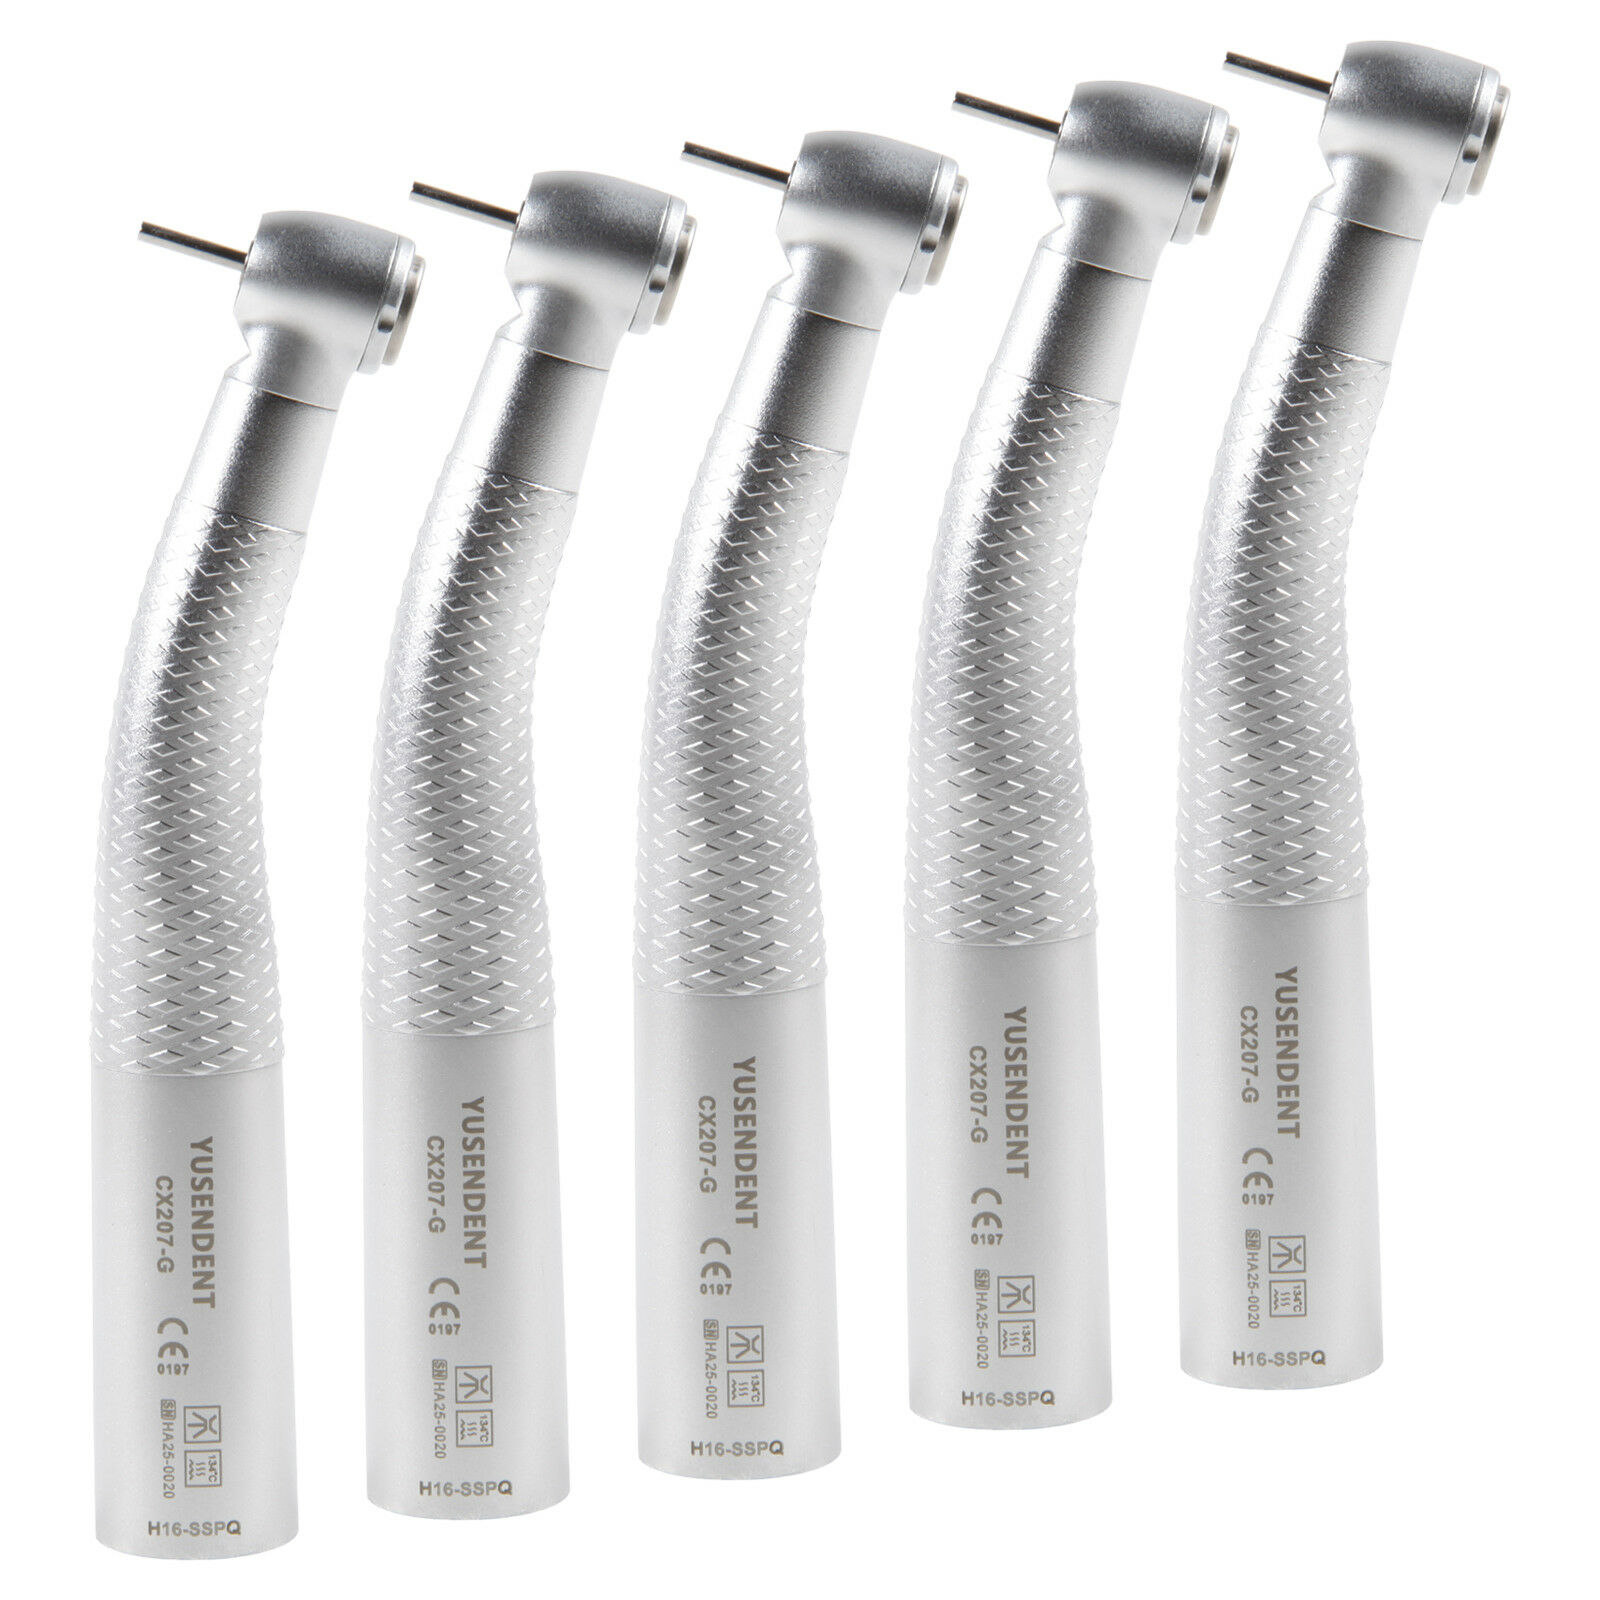 5PCS Dental Fiber Optic LED Turbine Handpiece fit Sirona R/F Coupling YUSENDENT